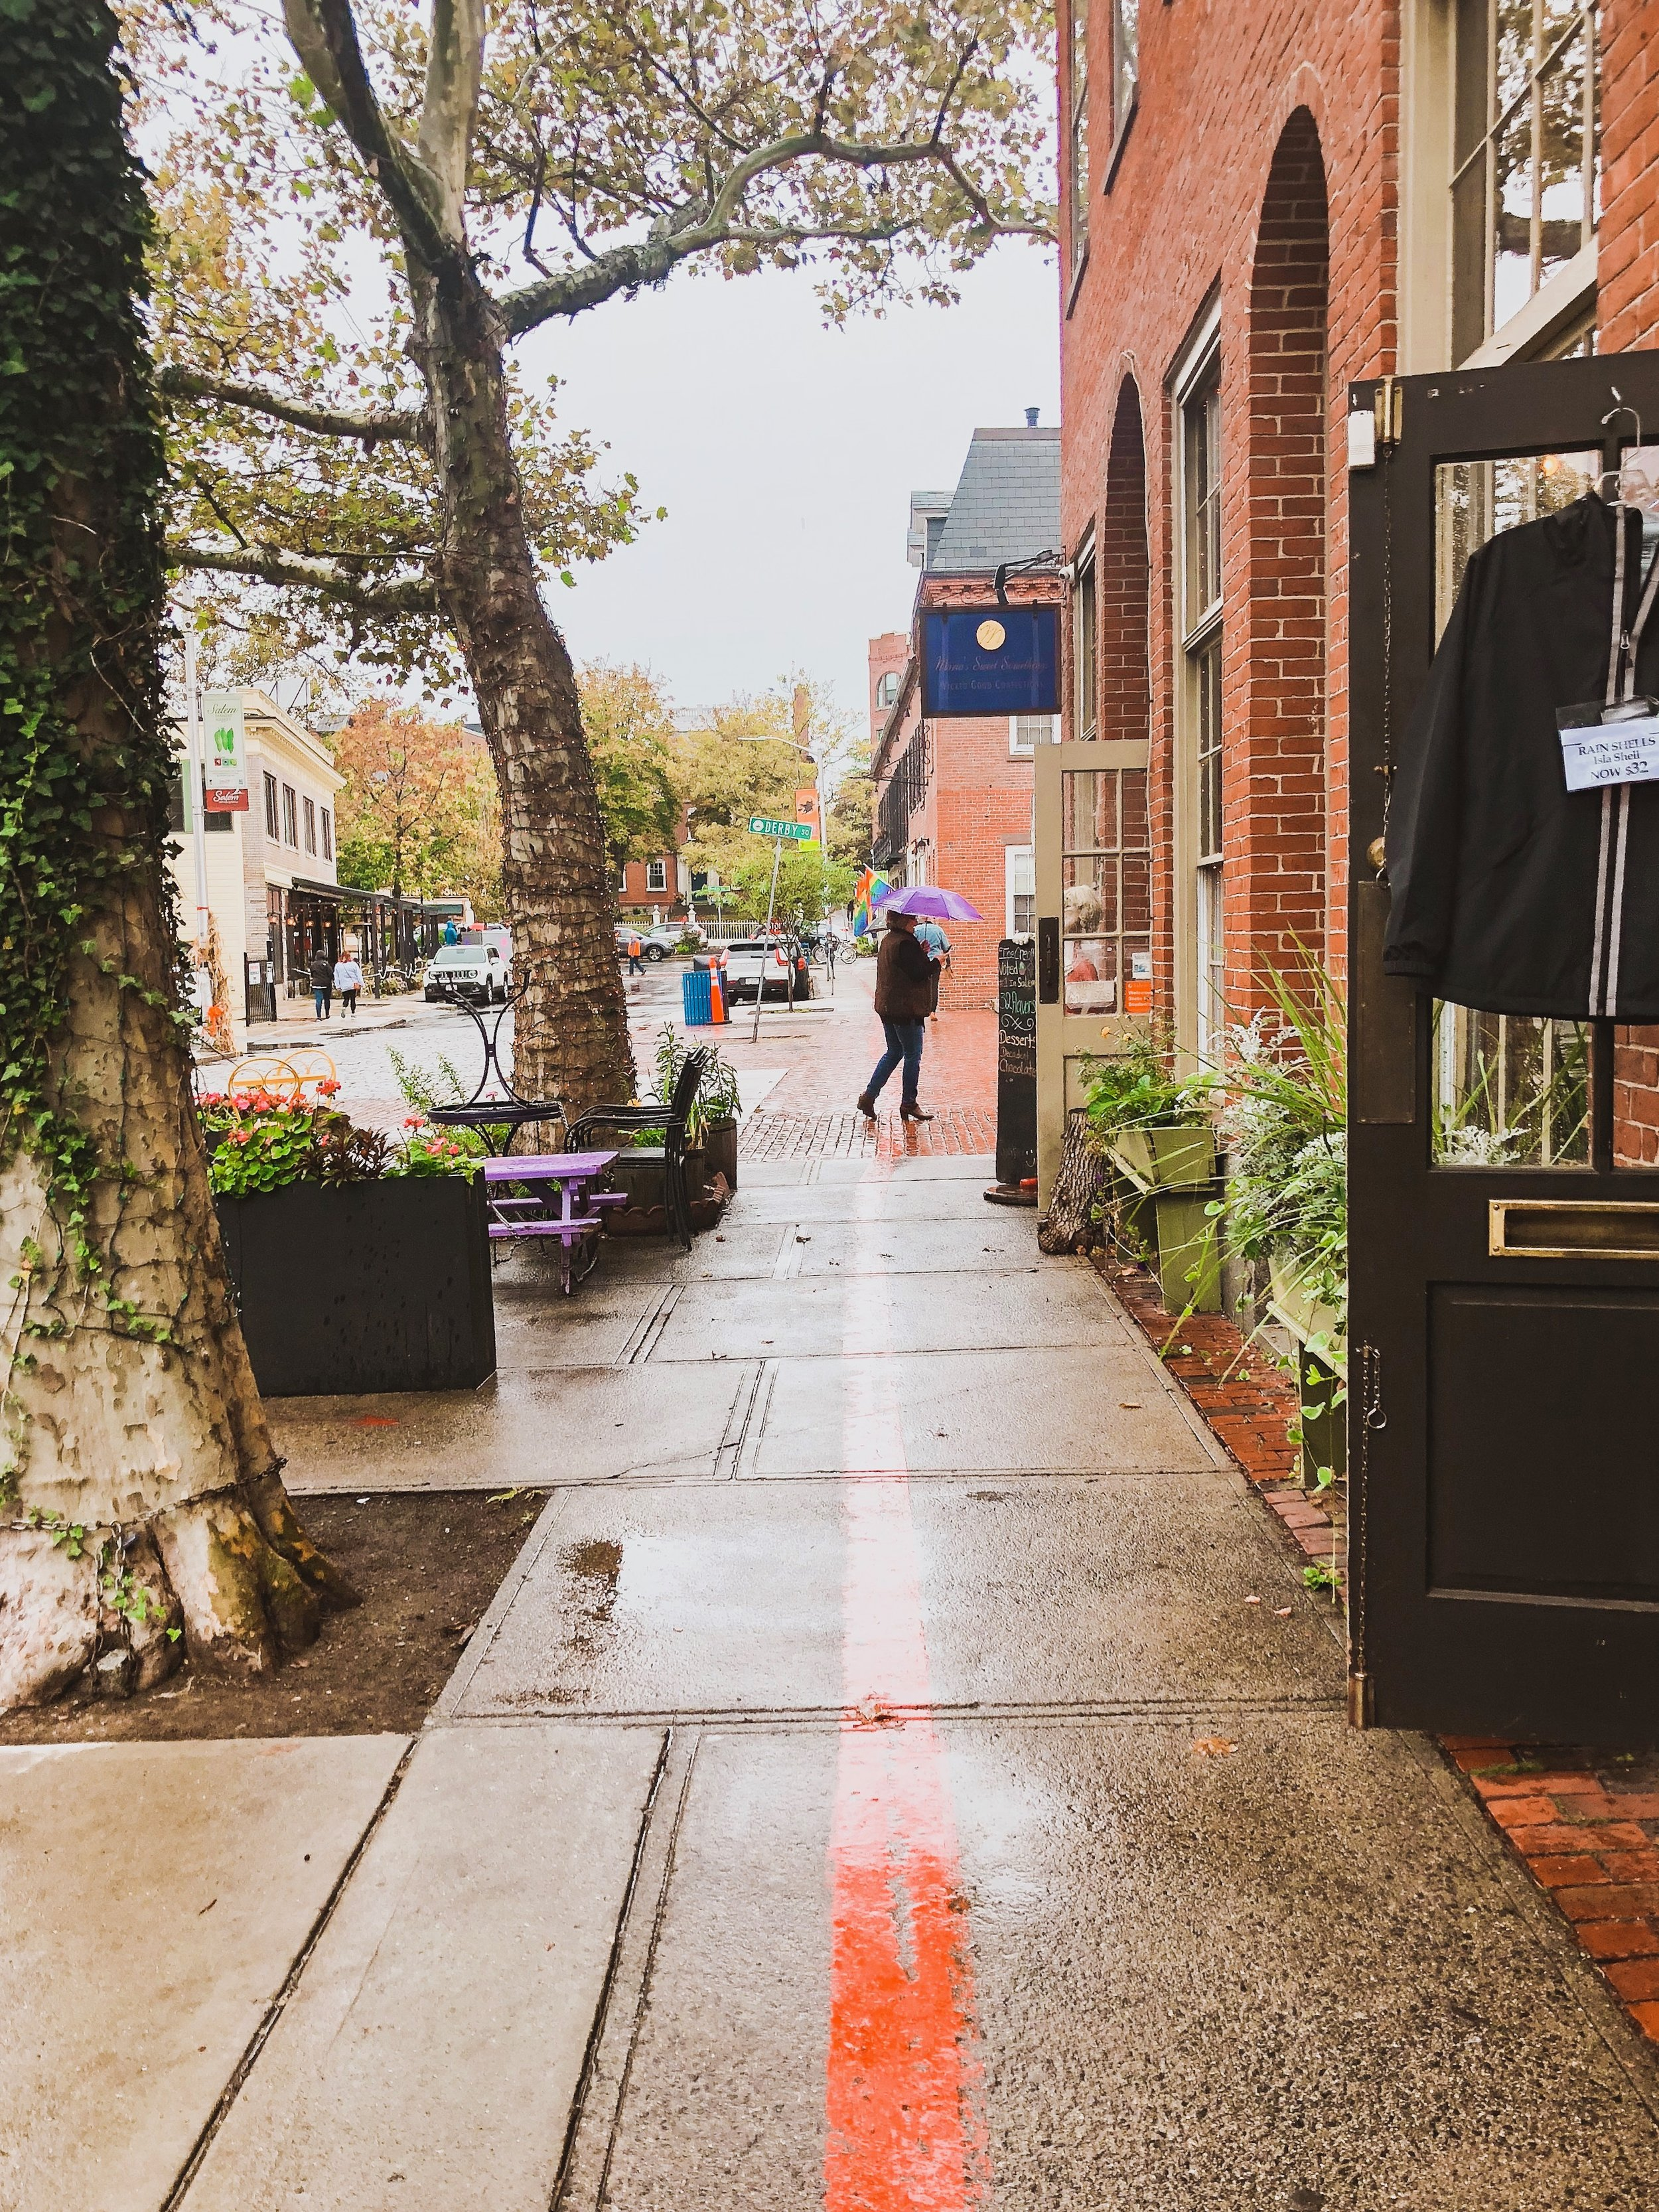 Salem, Massachusetts Travel Guide: Salem Heritage Trail